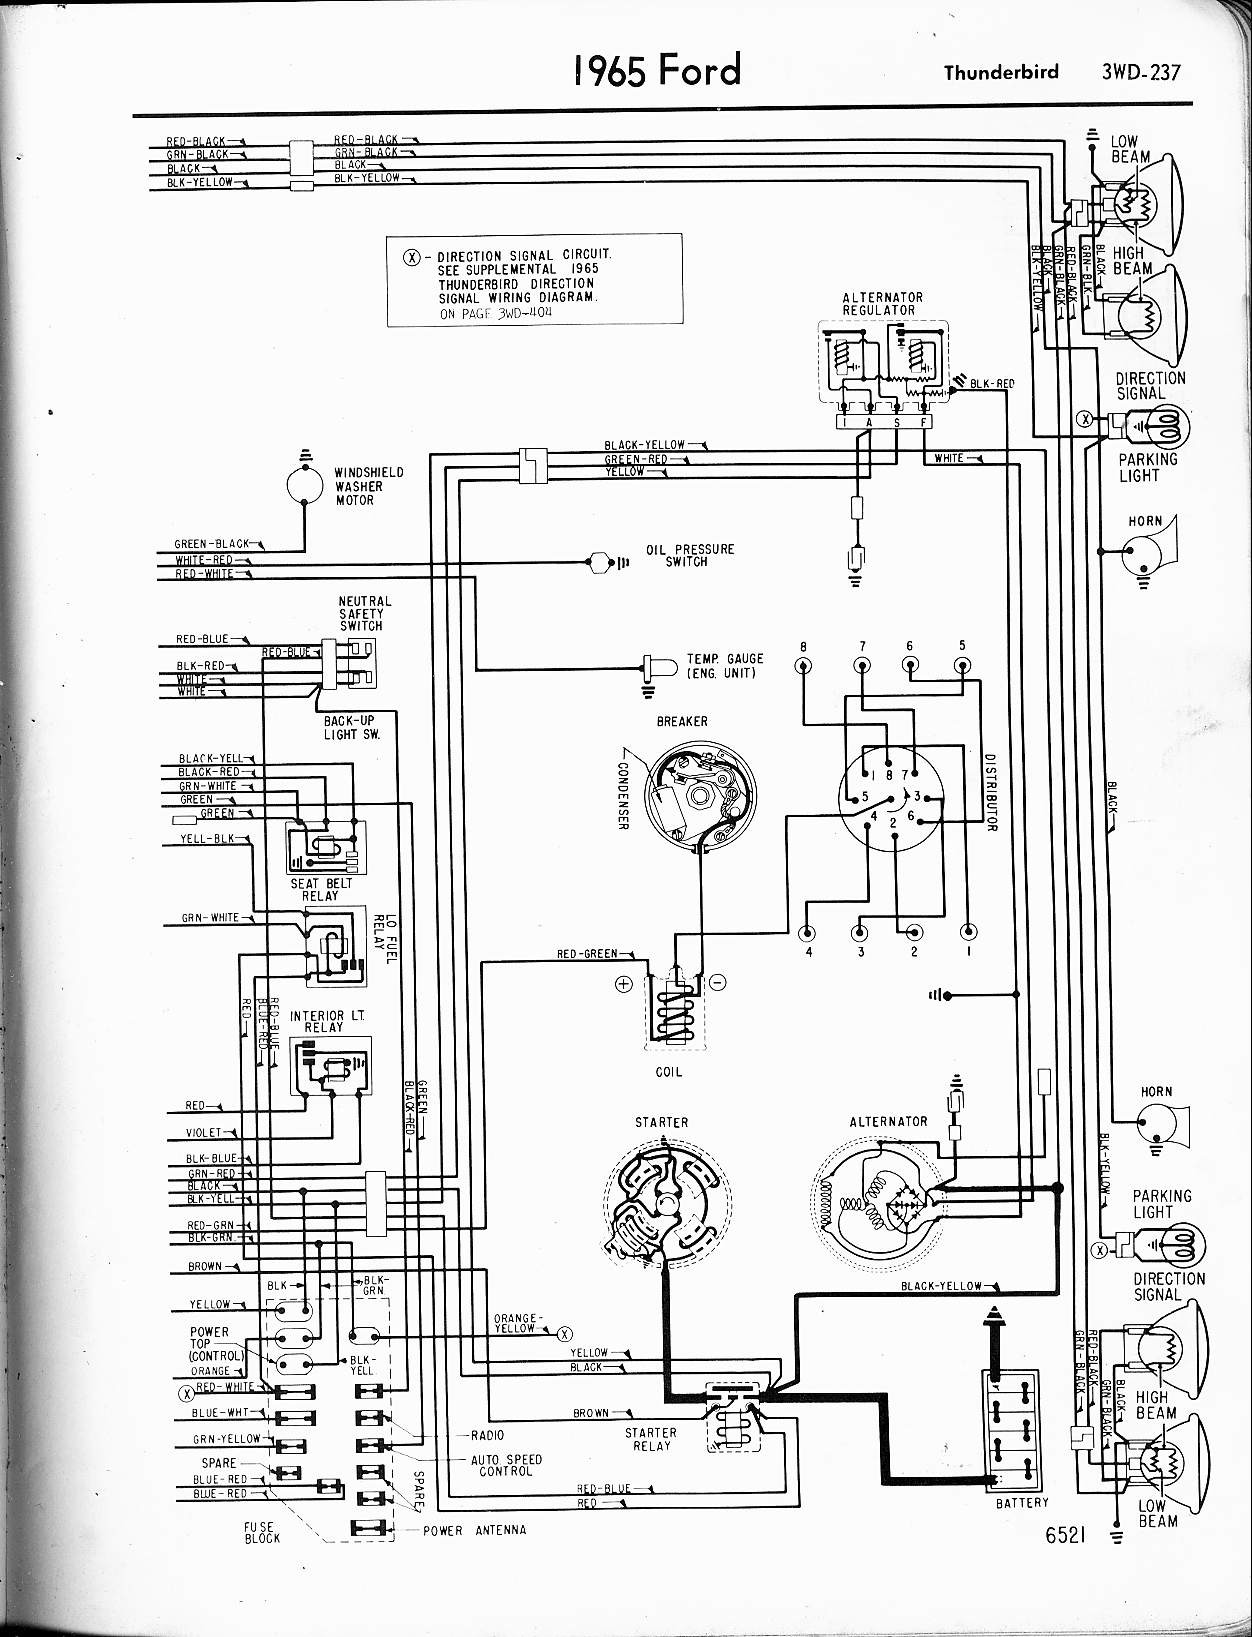 Ford Econoline Wiring Diagram Also 1966 Ford Thunderbird Wiring